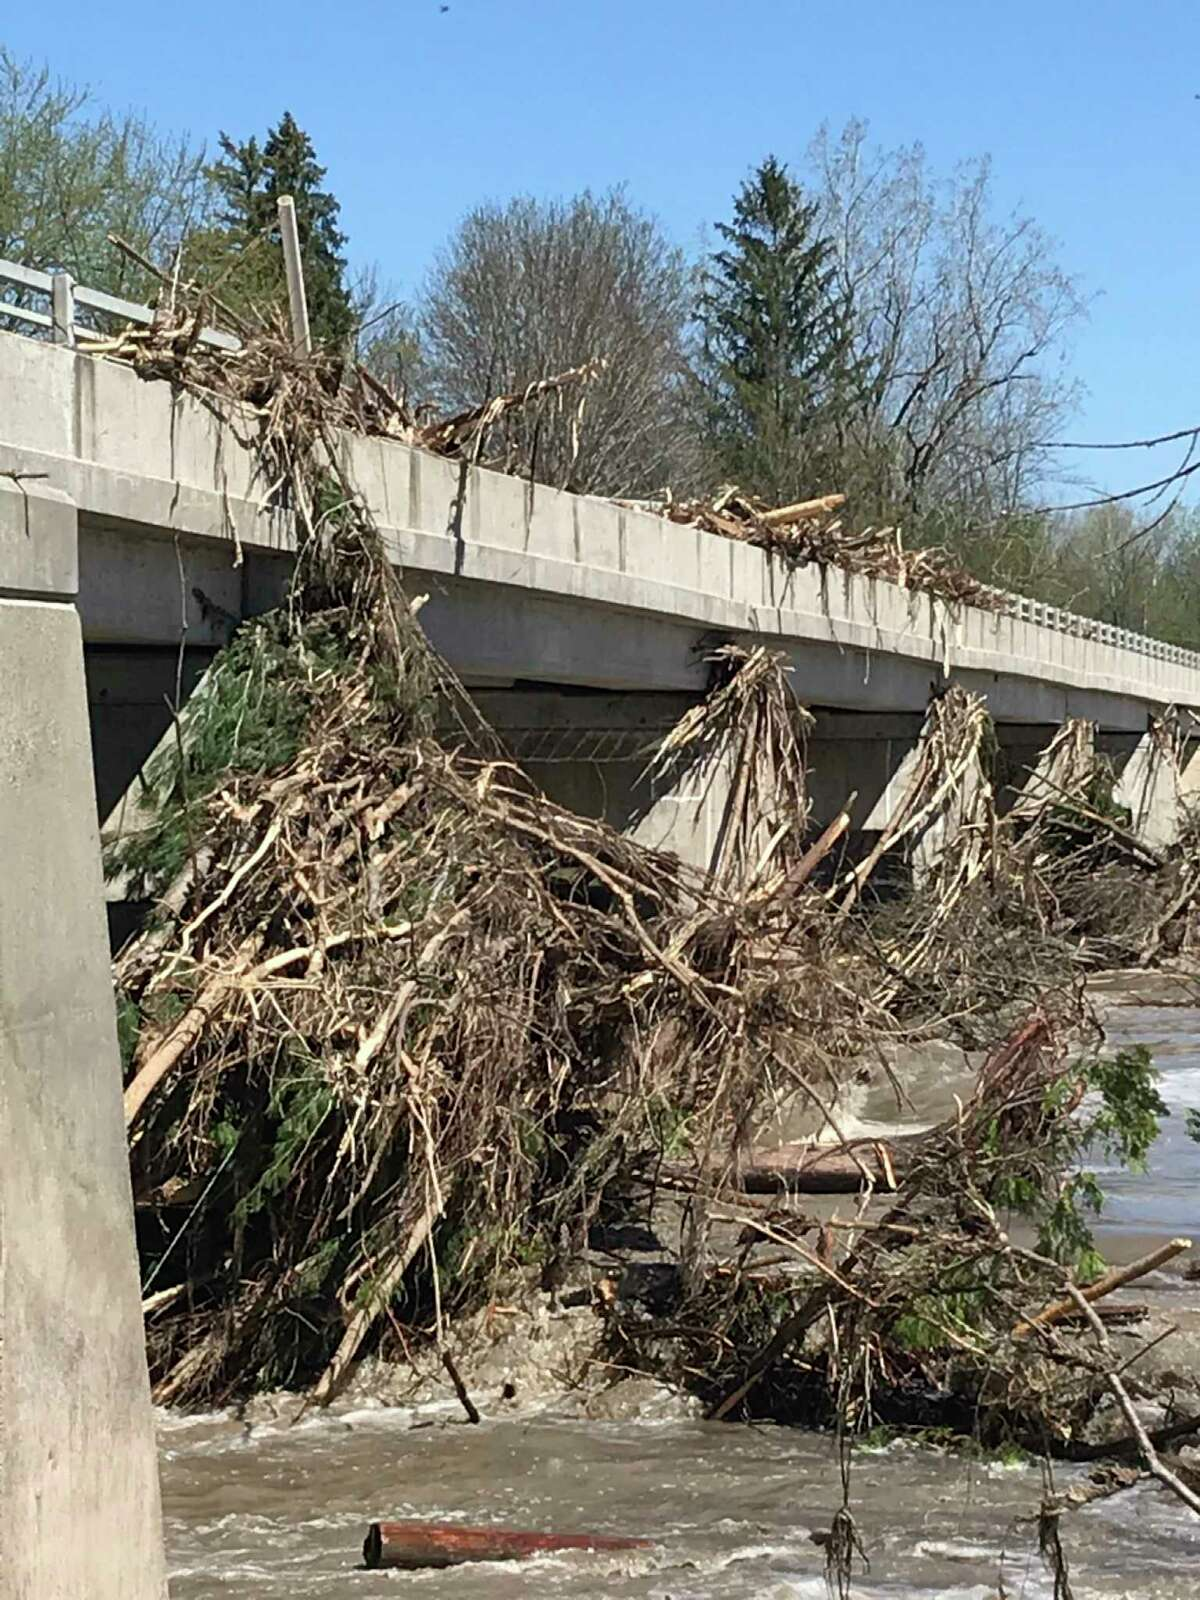 Pictured is the M-30 bridge over the Tittabawassee River, just north of Edenville, with trees and debris on top of the bridge, shortly after the May 19, 2020 dam failures. The bridge was repaired and reopened in September 2020. (Photo courtesy of Michigan Department of Transportation)